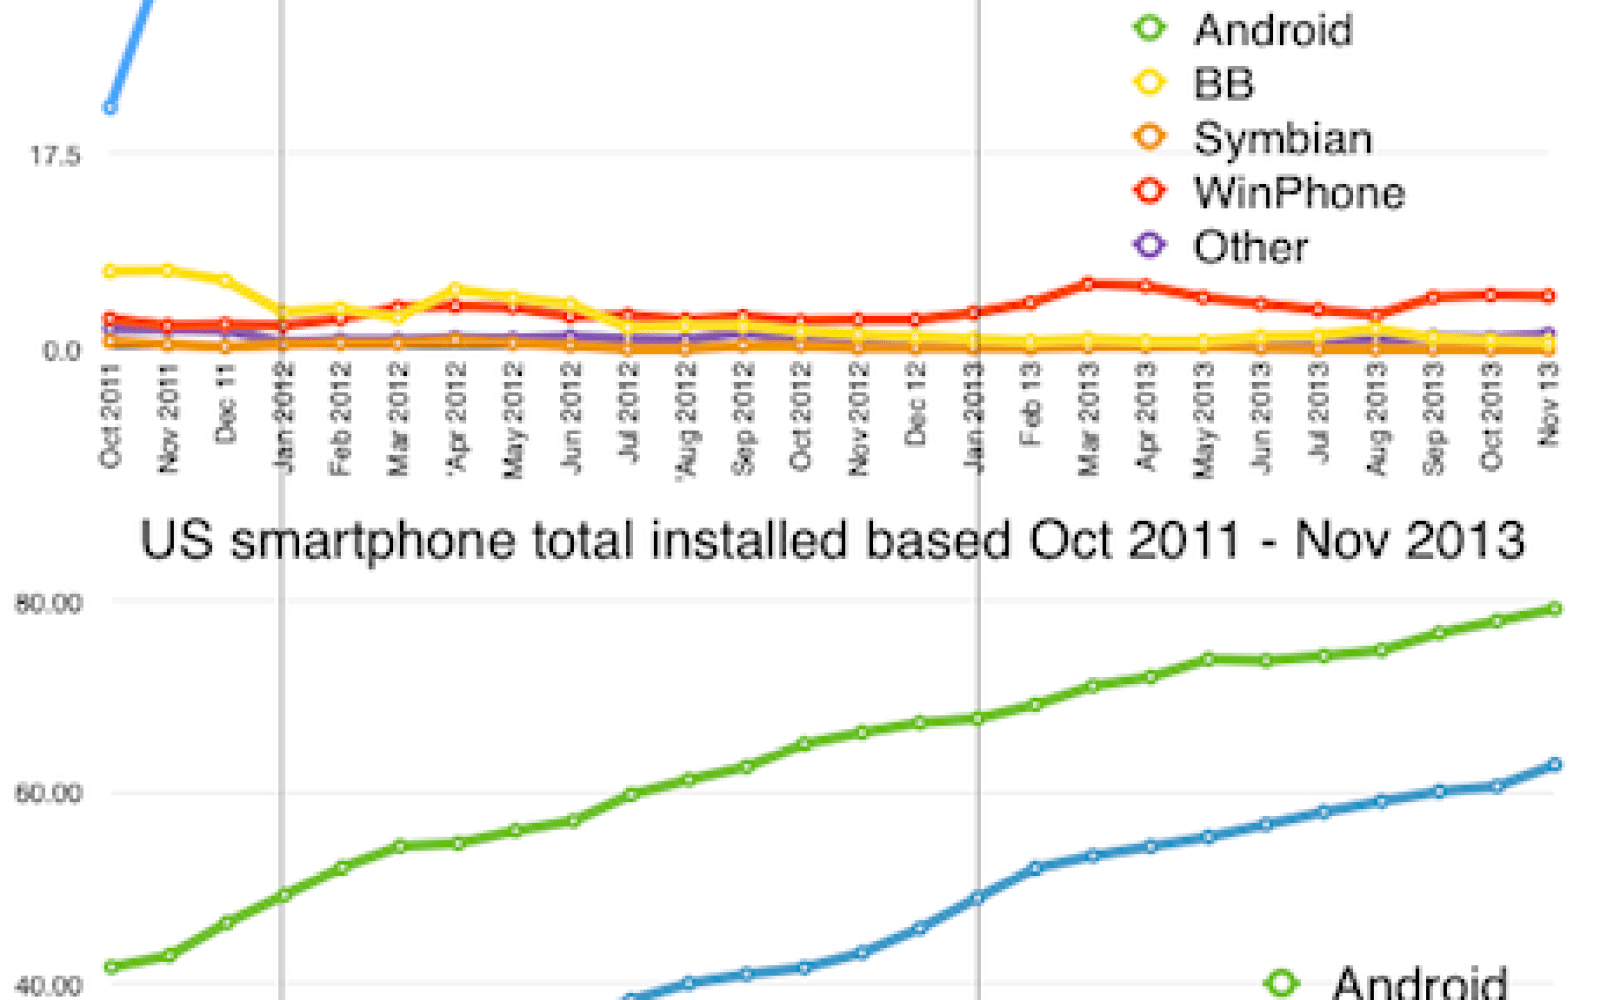 iOS/Android market share vs  installed base visualized - 9to5Mac